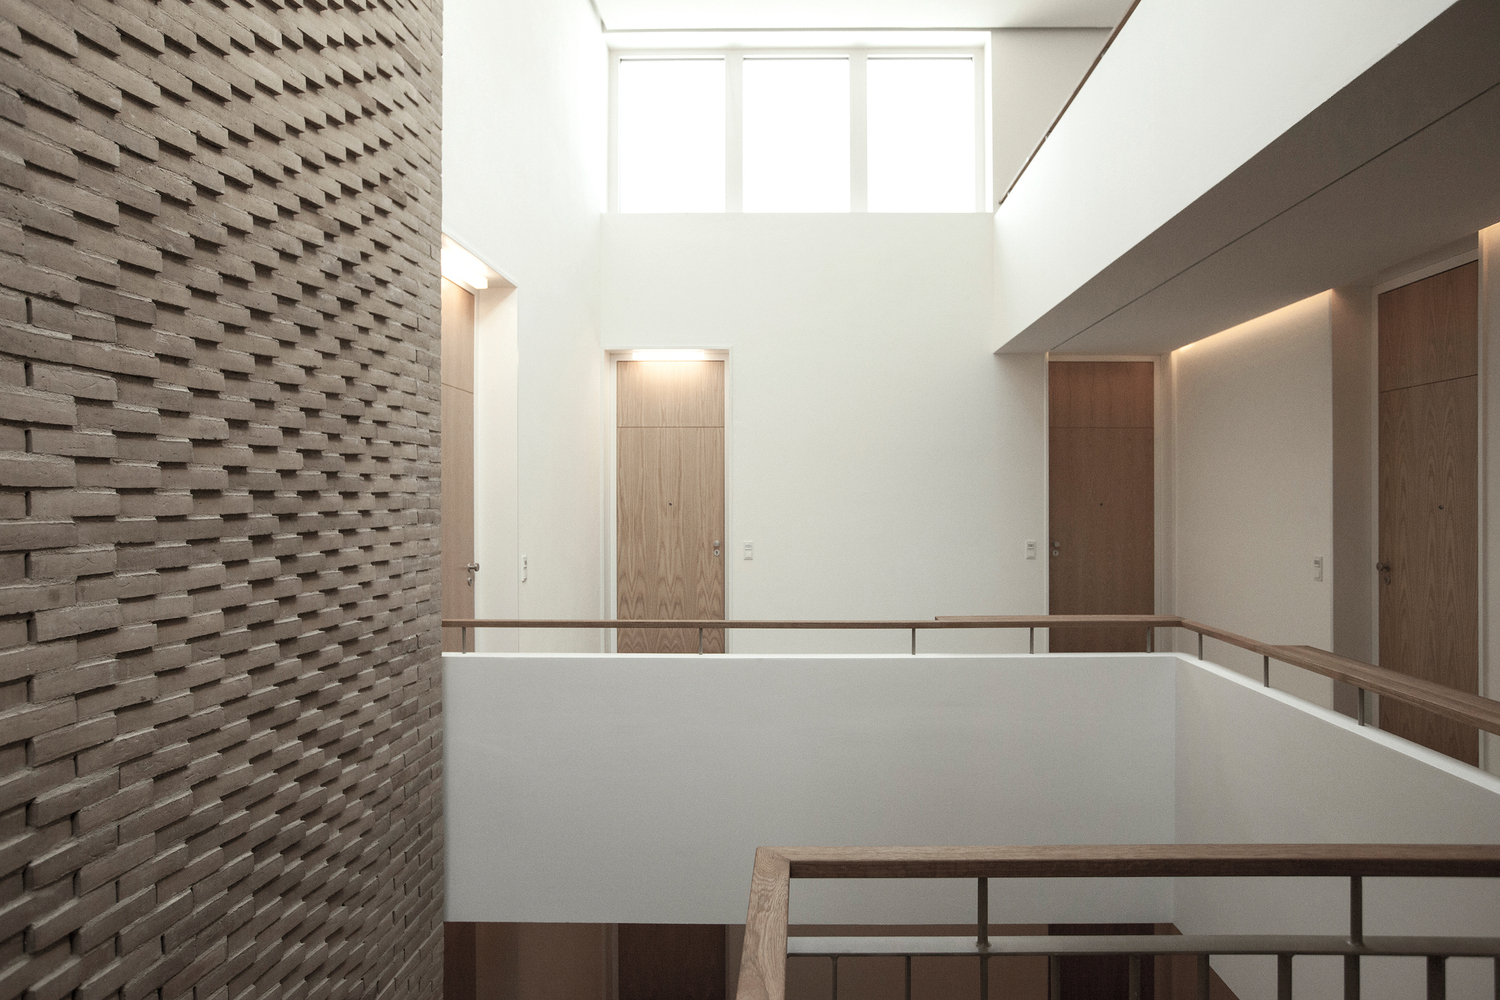 this handlaid brick feature wall was inspired by soundwaves in water 22quadrat